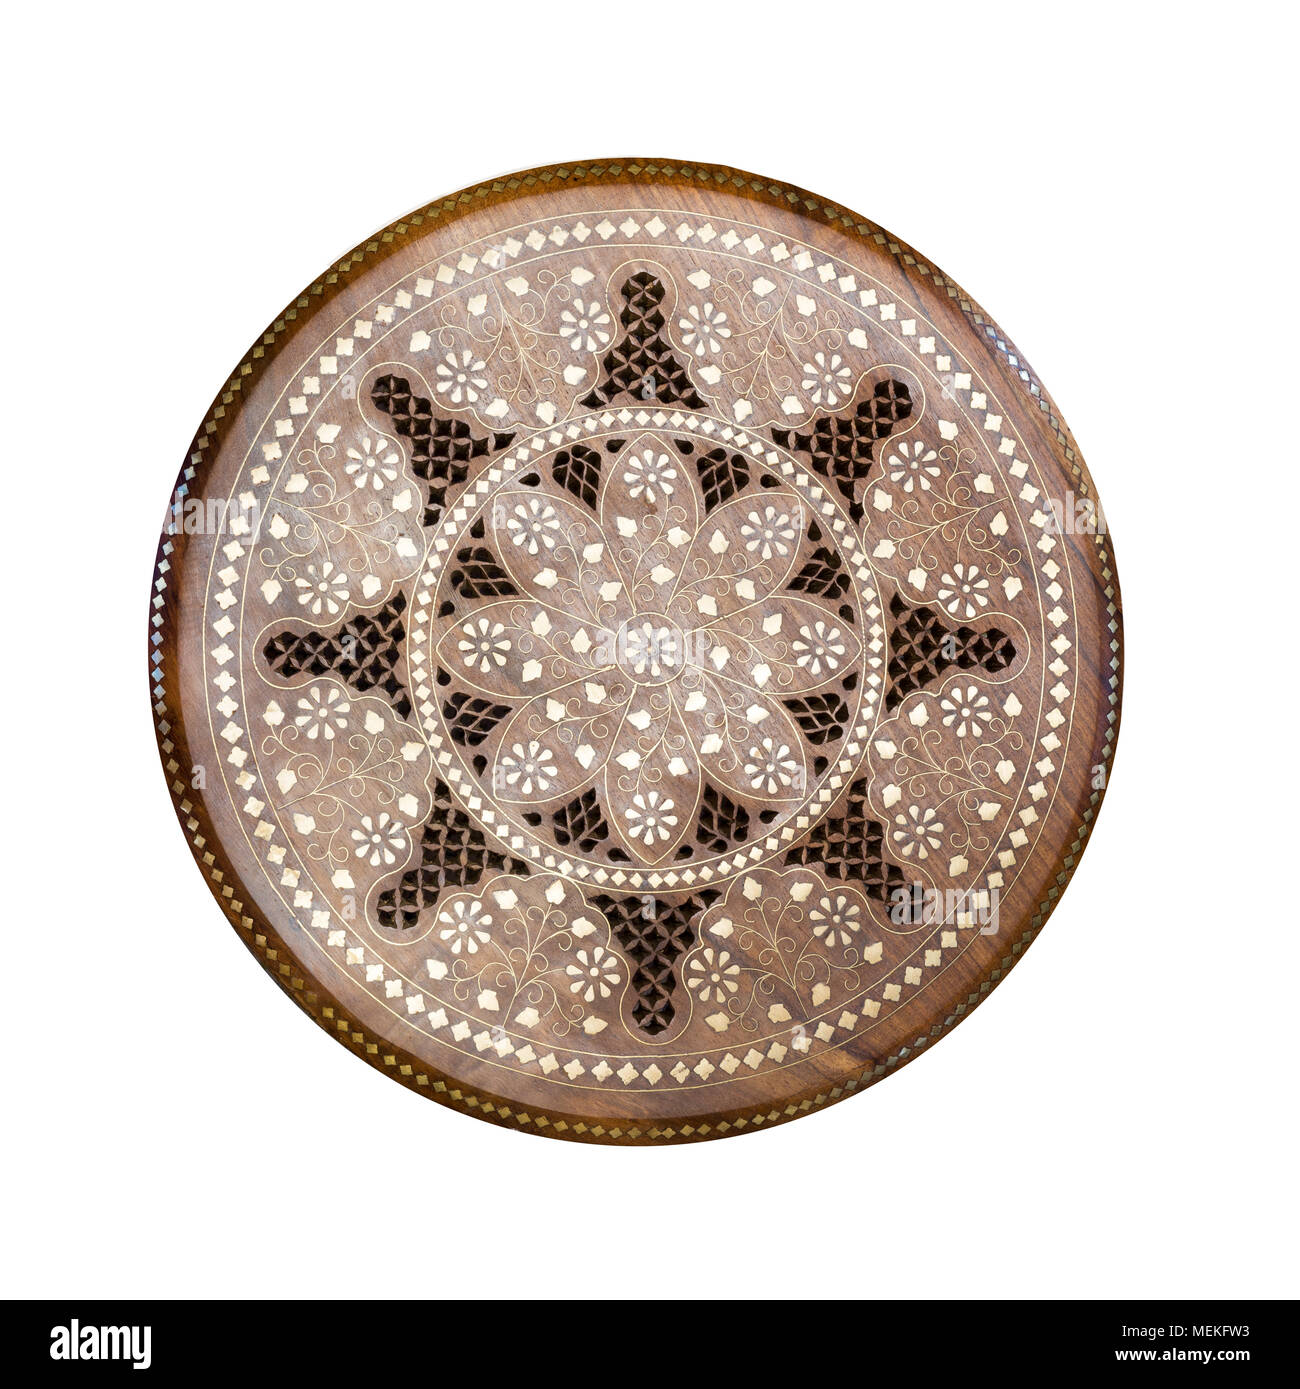 Handmade round wooden pattern. Ornamental circle floral decor panel with metal incrustation. Hadcraft vintage stool. Top view. Isolated on white. - Stock Image